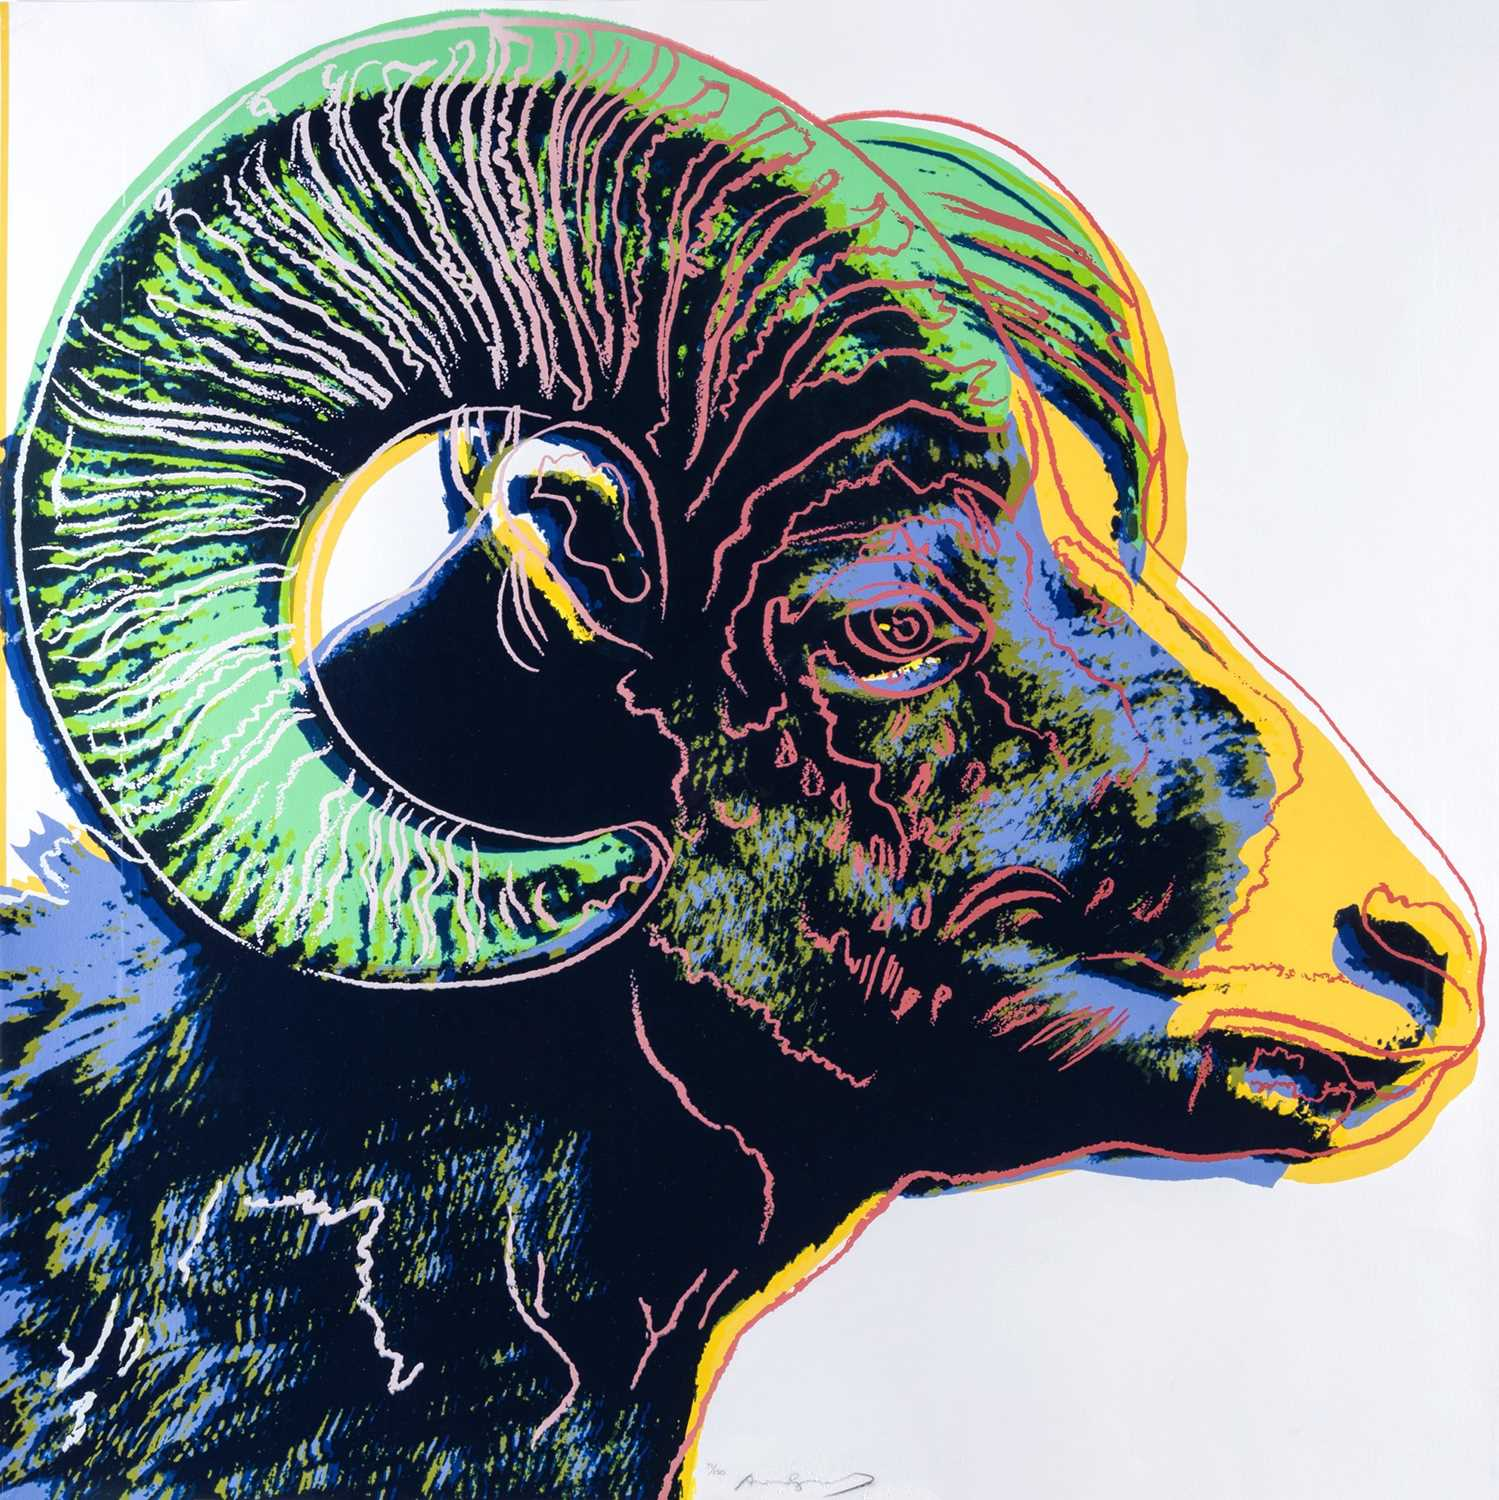 Lot 1 - Andy Warhol (American 1928-1987), 'Bighorn Ram, from Endangered Species', 1983